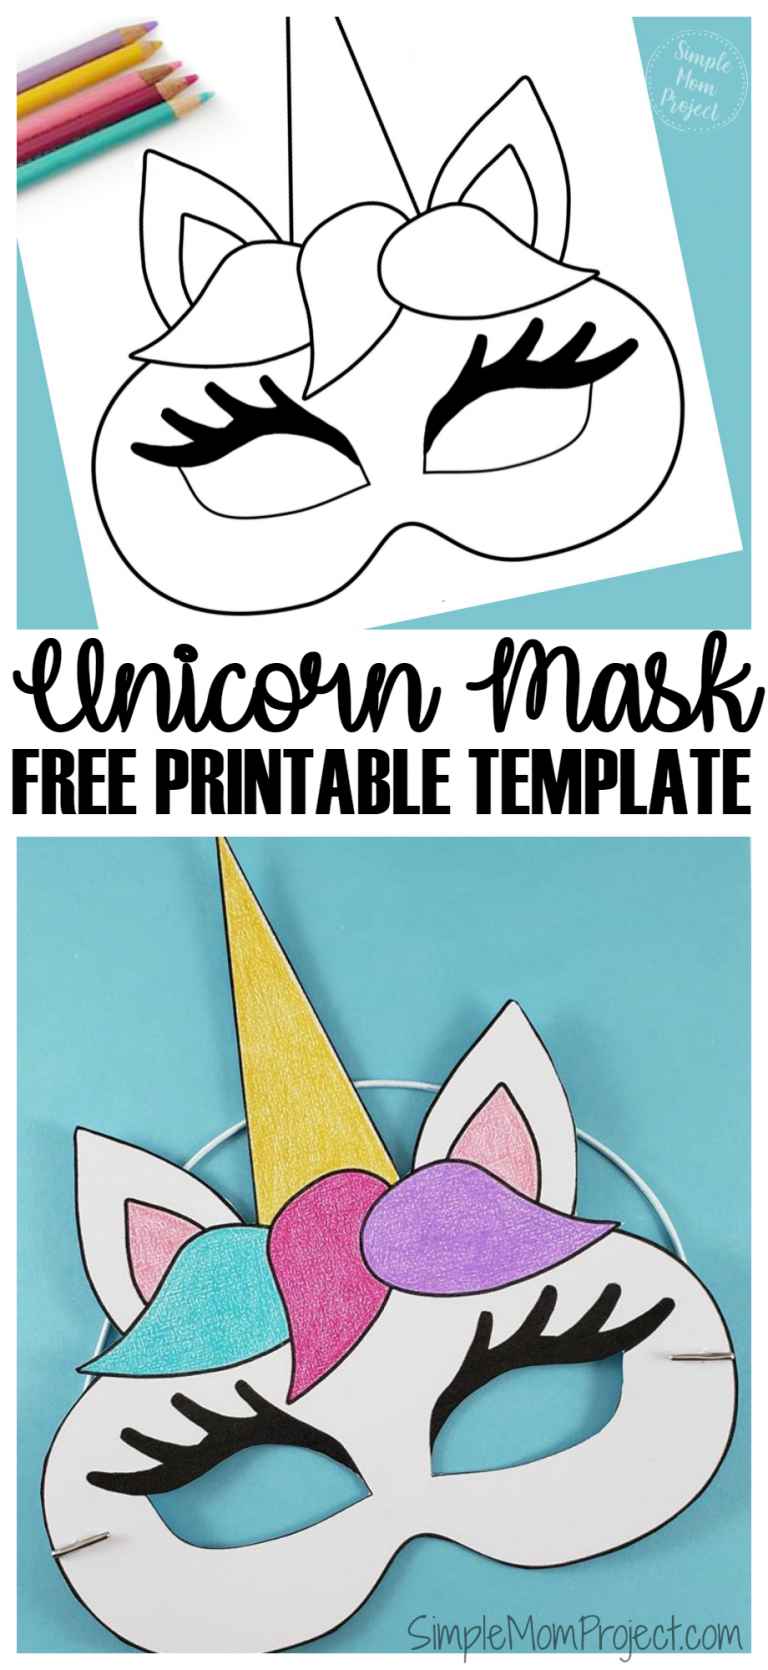 photo regarding Free Printable Unicorn Mask titled Unicorn Confront Masks with Totally free Printable Templates Most straightforward of